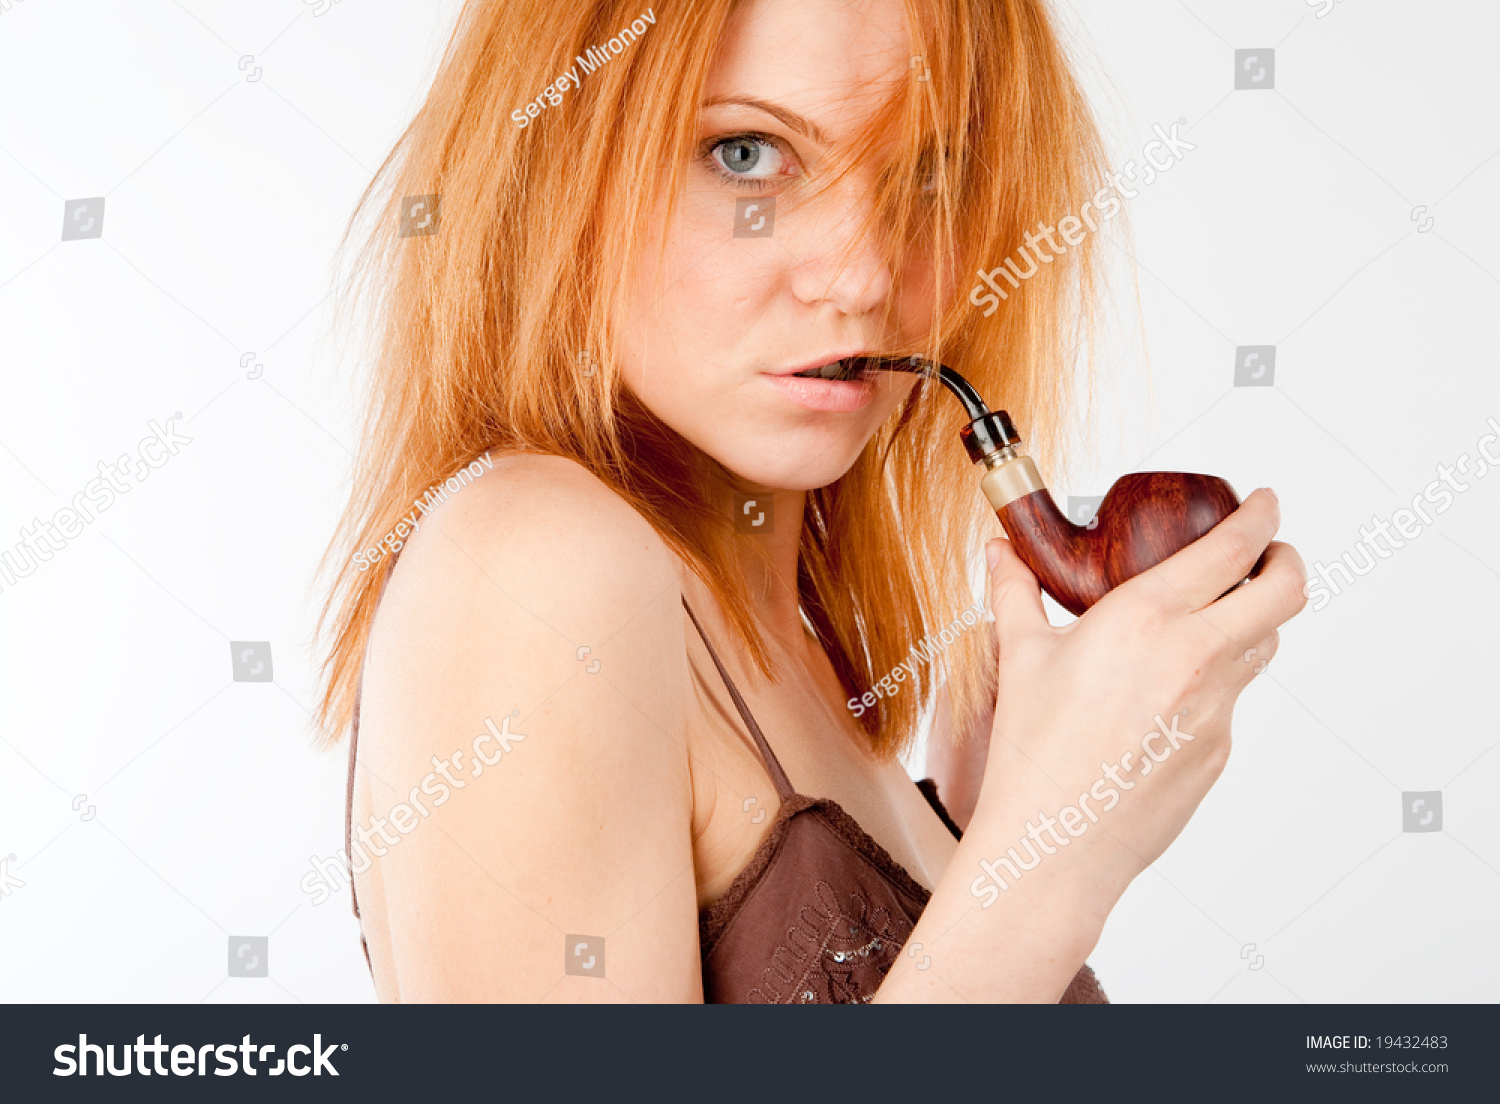 girl smoking pipe stock photo royalty free 19432483 shutterstock